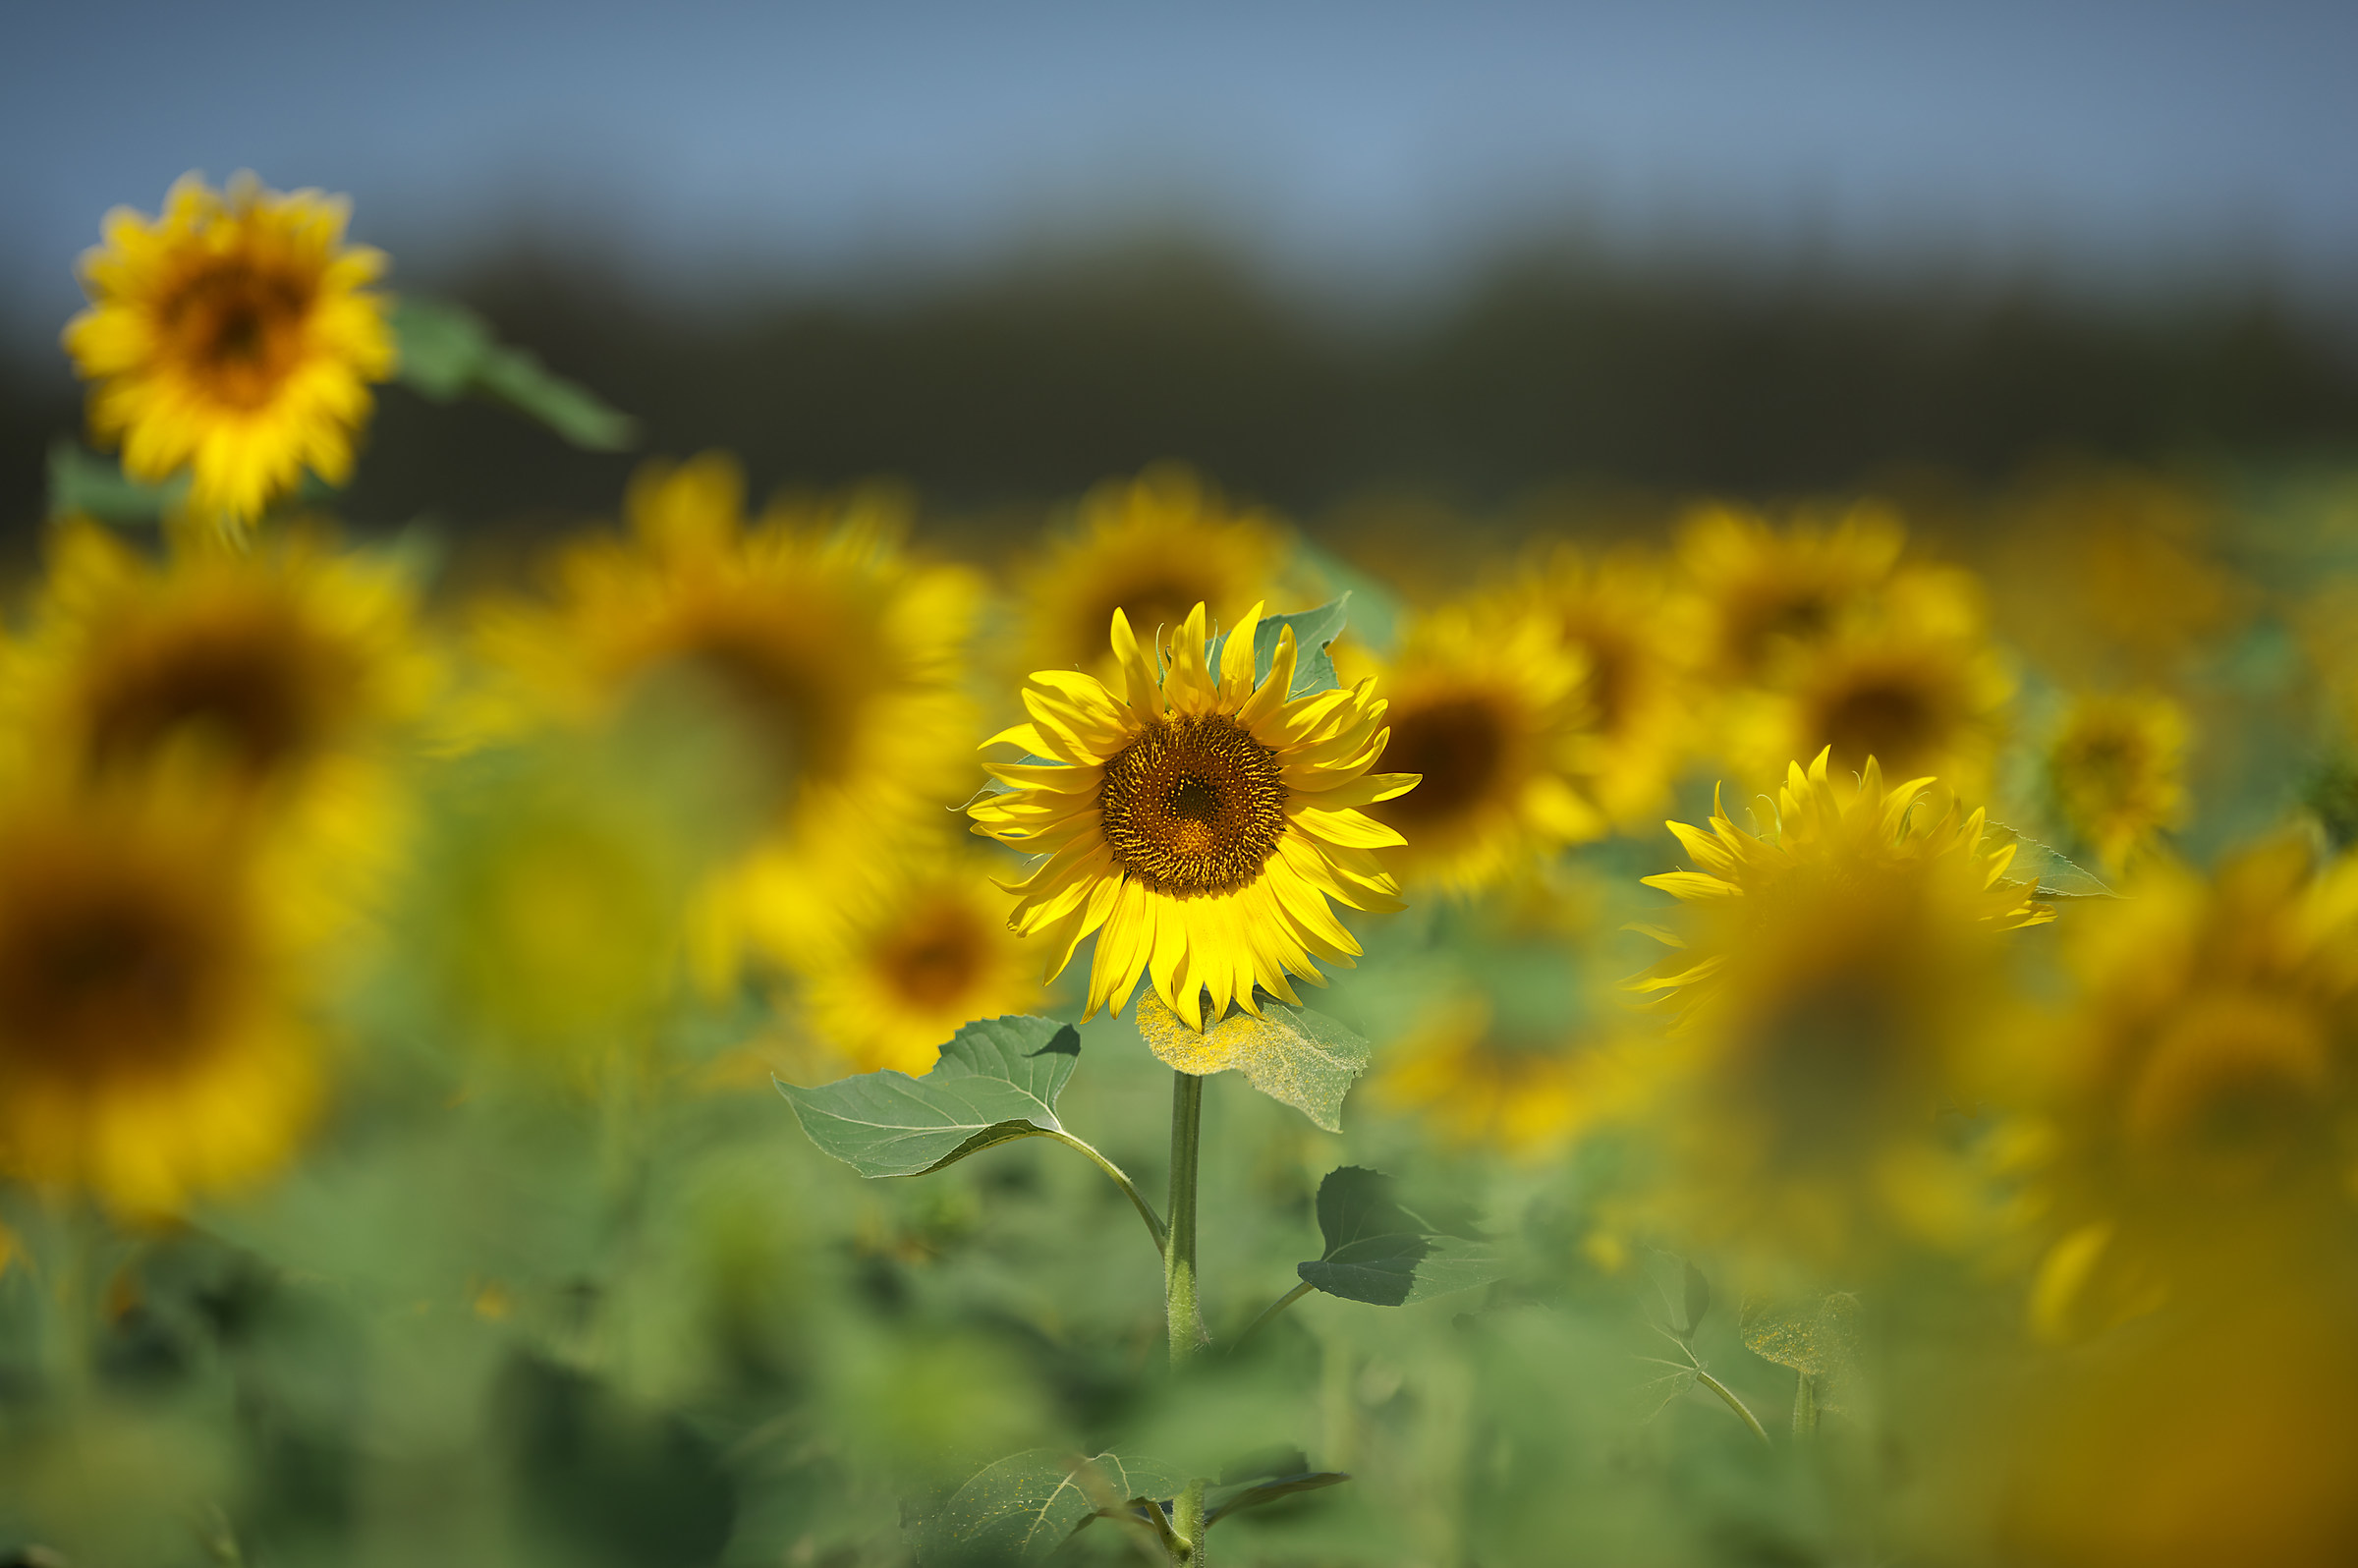 Sunflowers.. Among the many I've seen you...